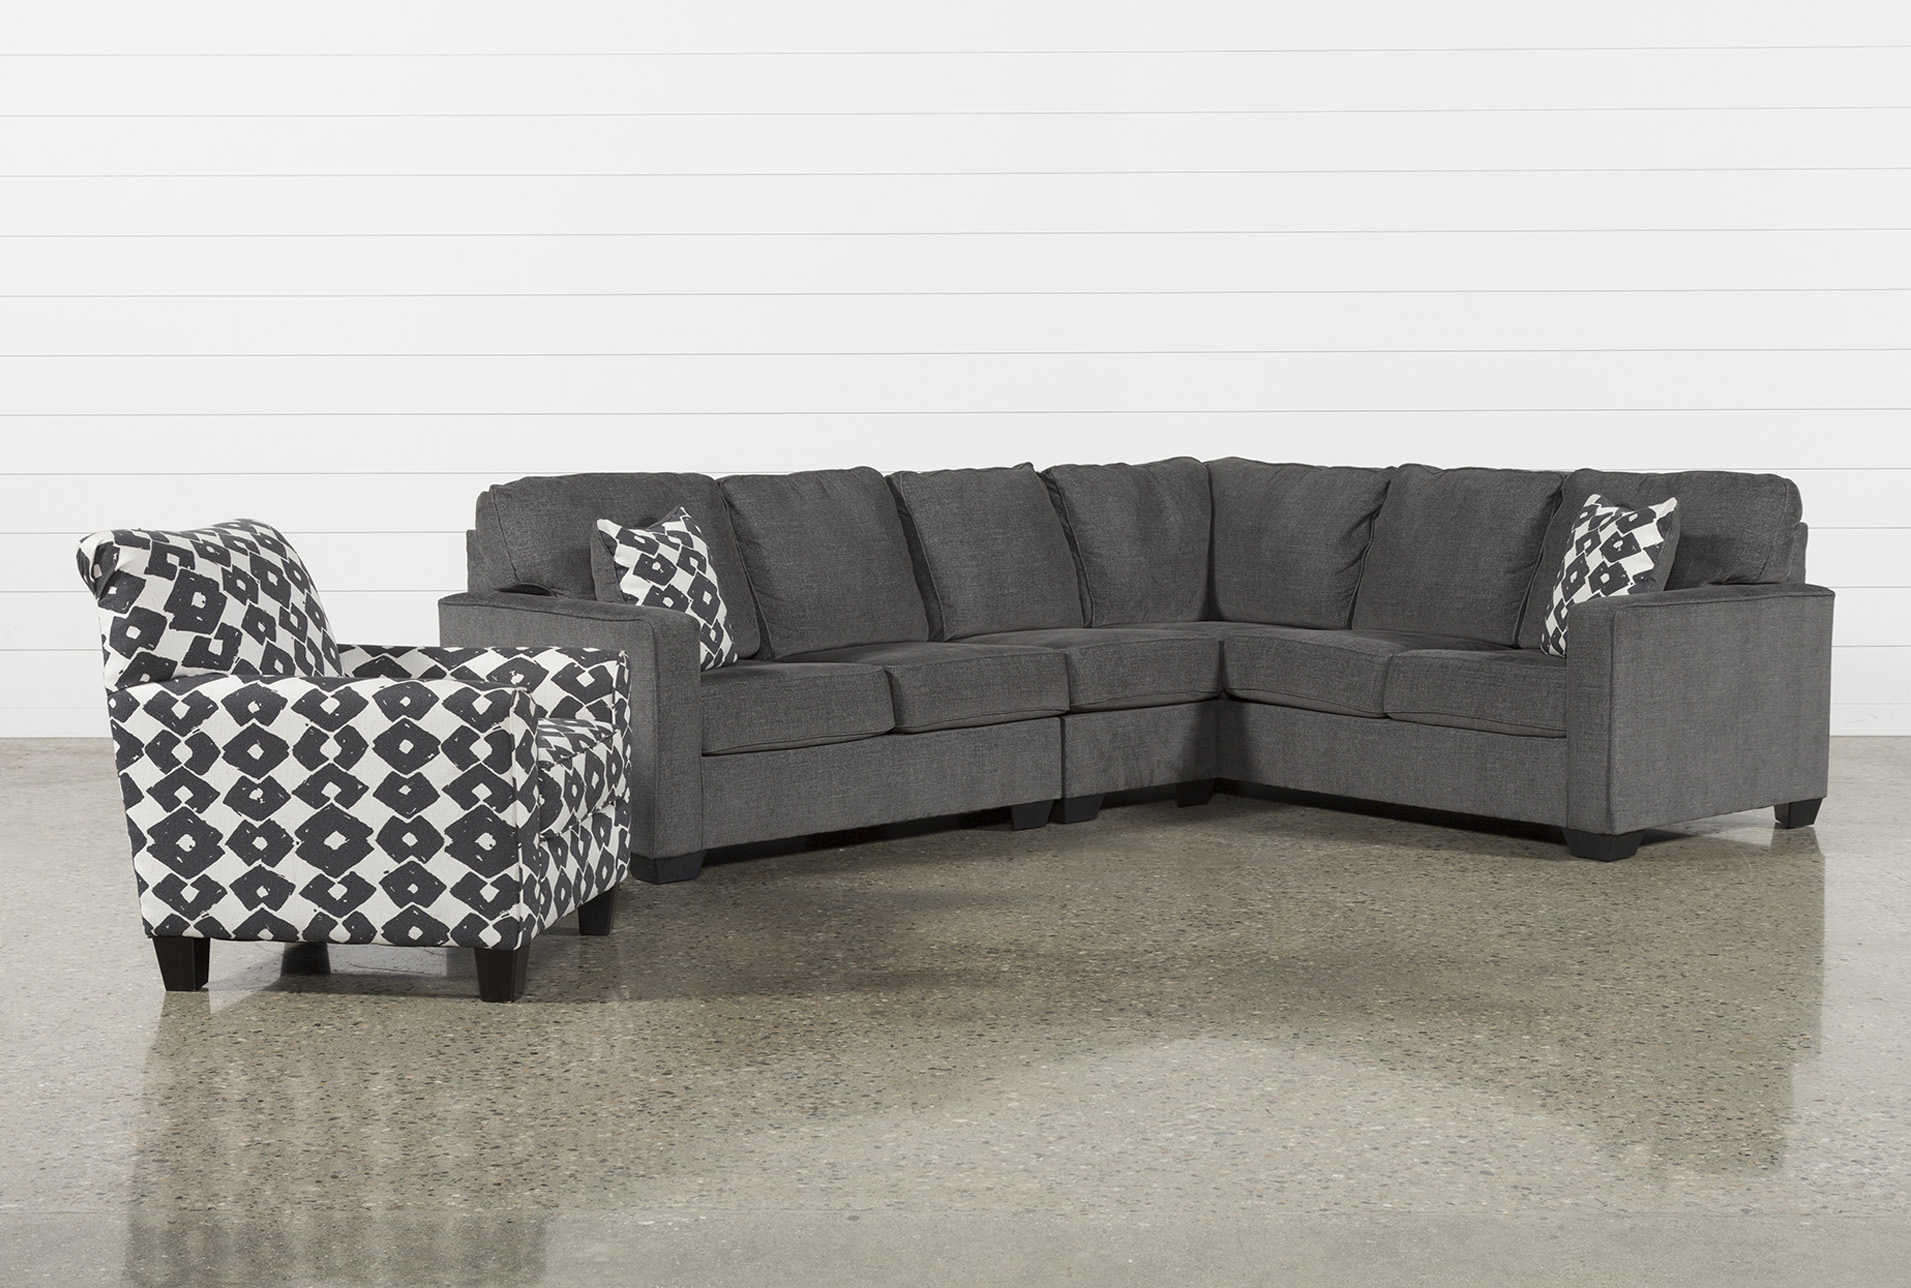 Turdur 3 Piece Laf Sectional With Accent Chair (Qty: 1) Has Been  Successfully Added To Your Cart.